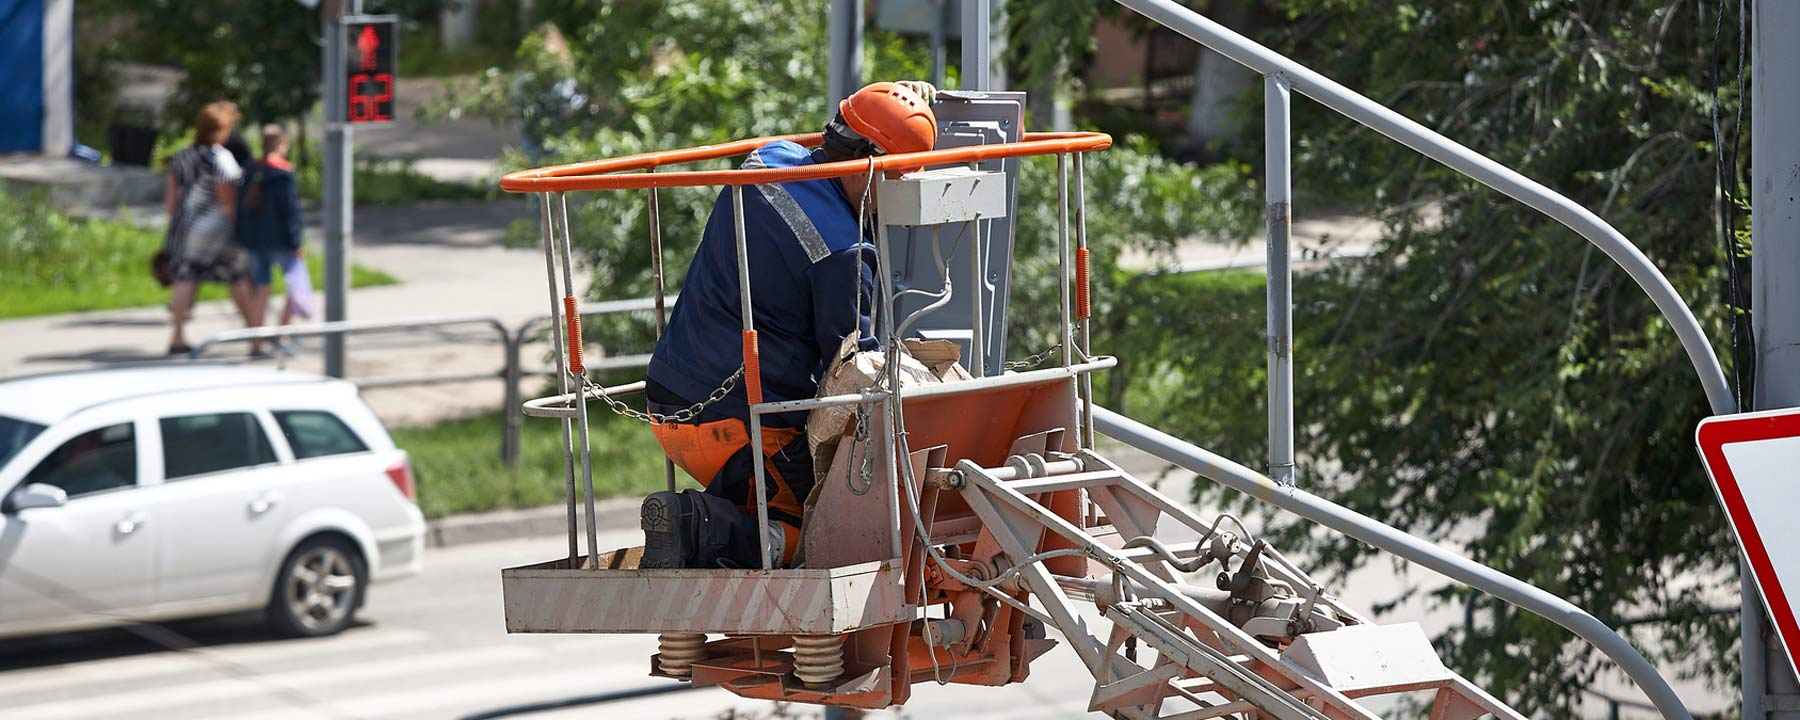 man working in bucket lift